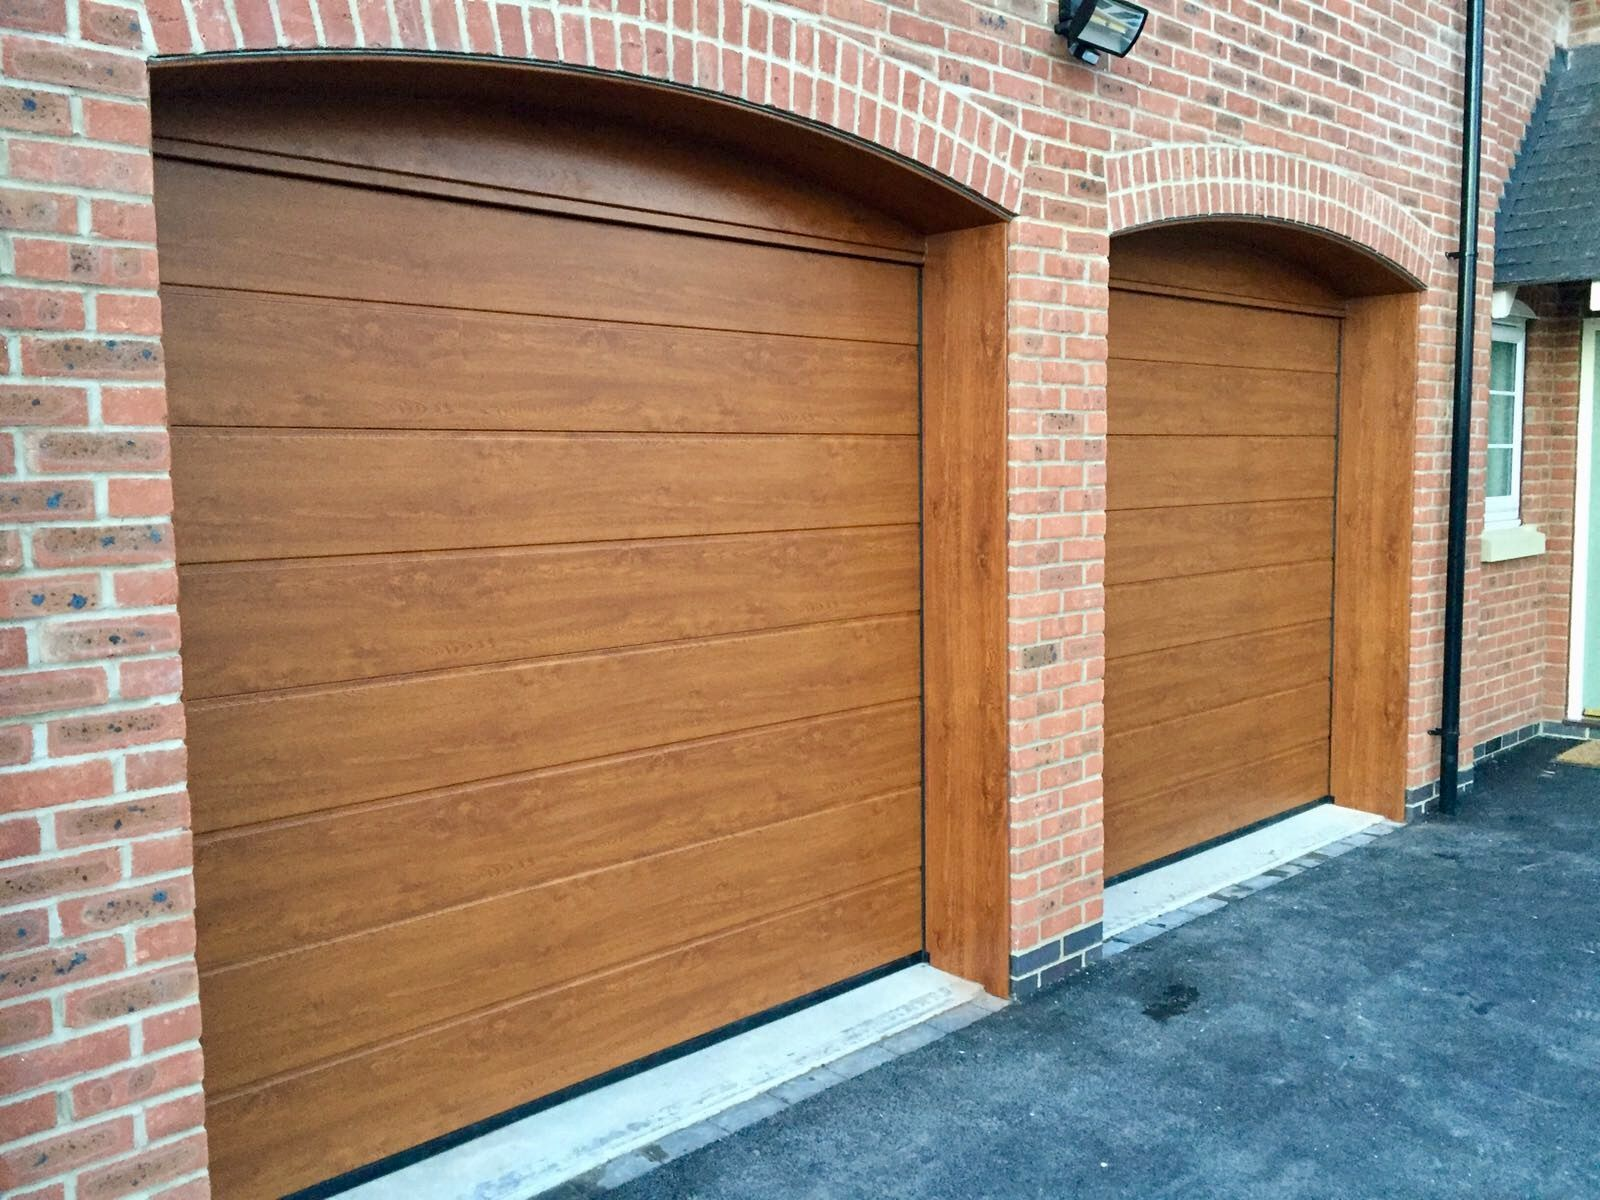 Hormann m rib sectionals golden oak garage doors pinterest cms doors quality range of garage front doors rubansaba